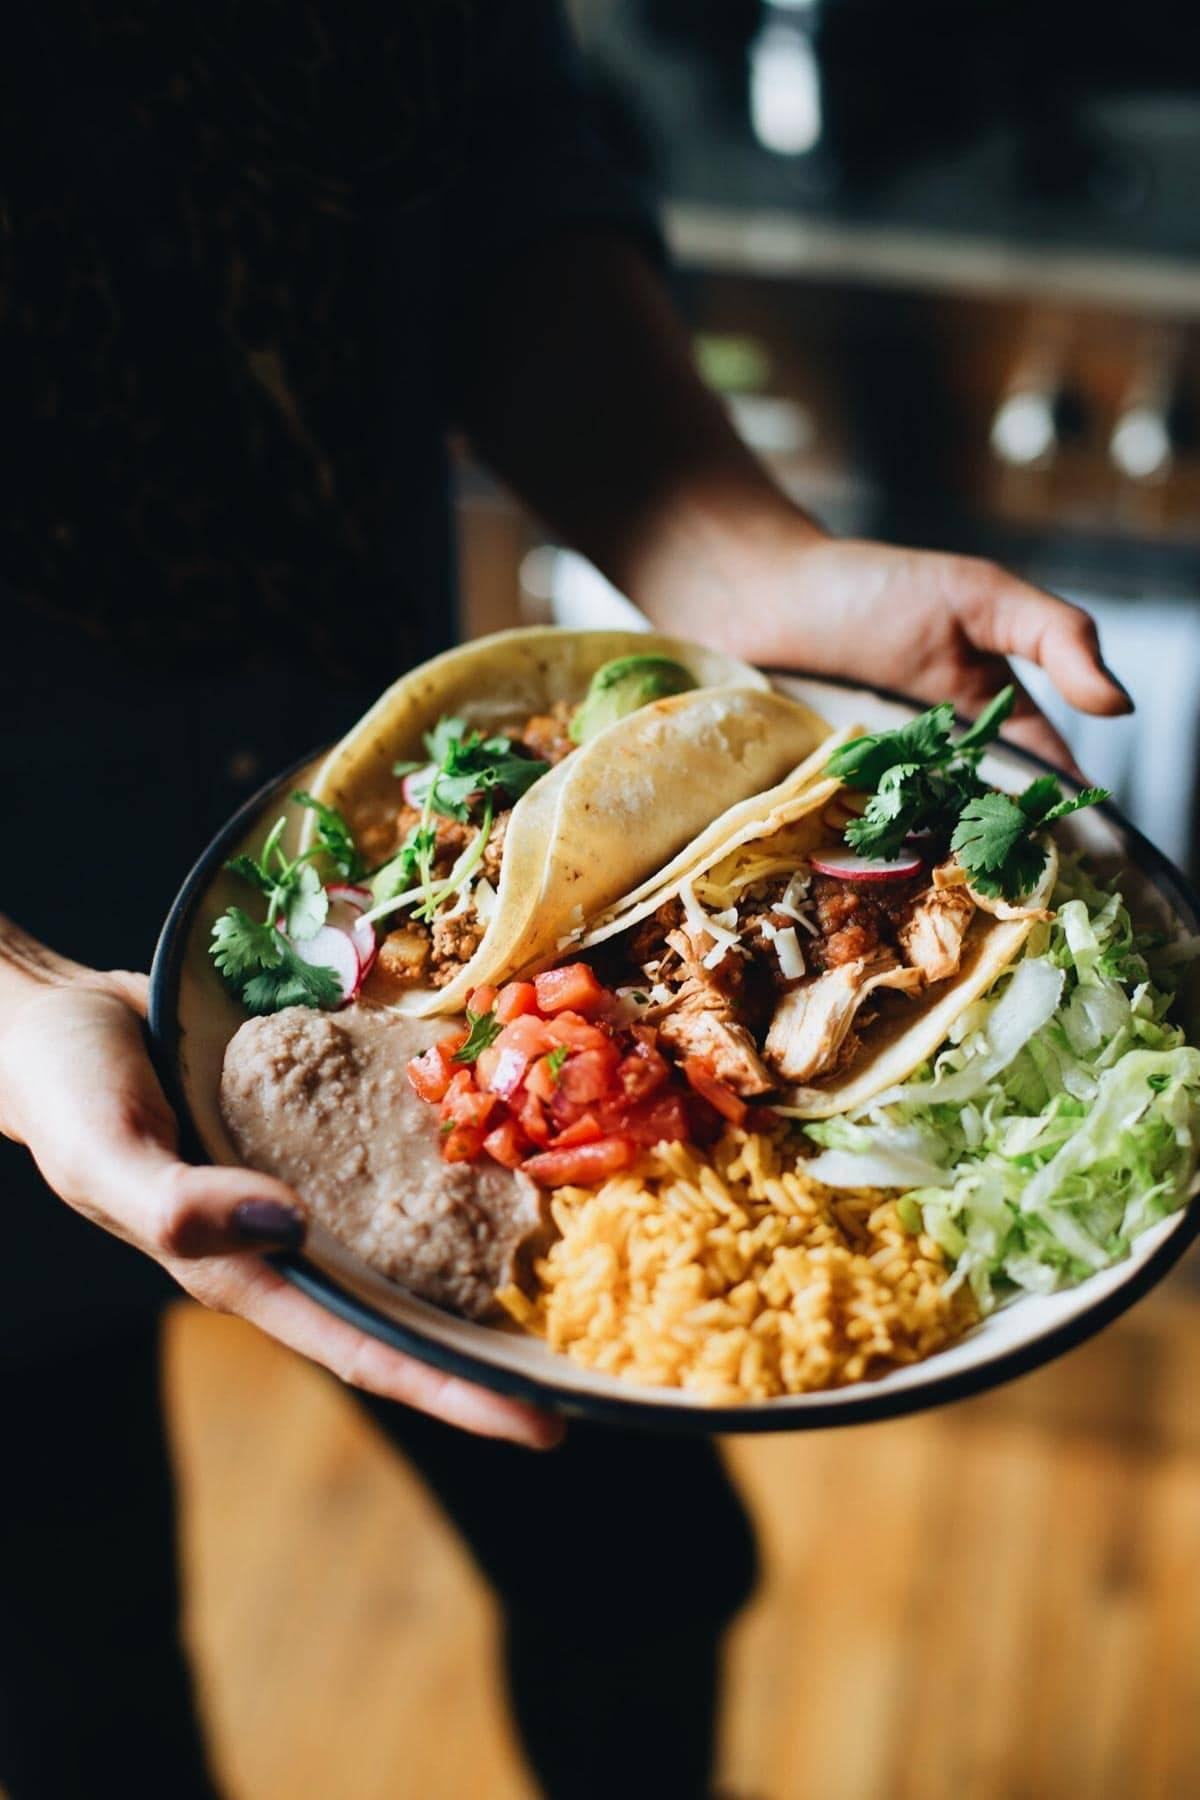 Hands holding a plate of food.